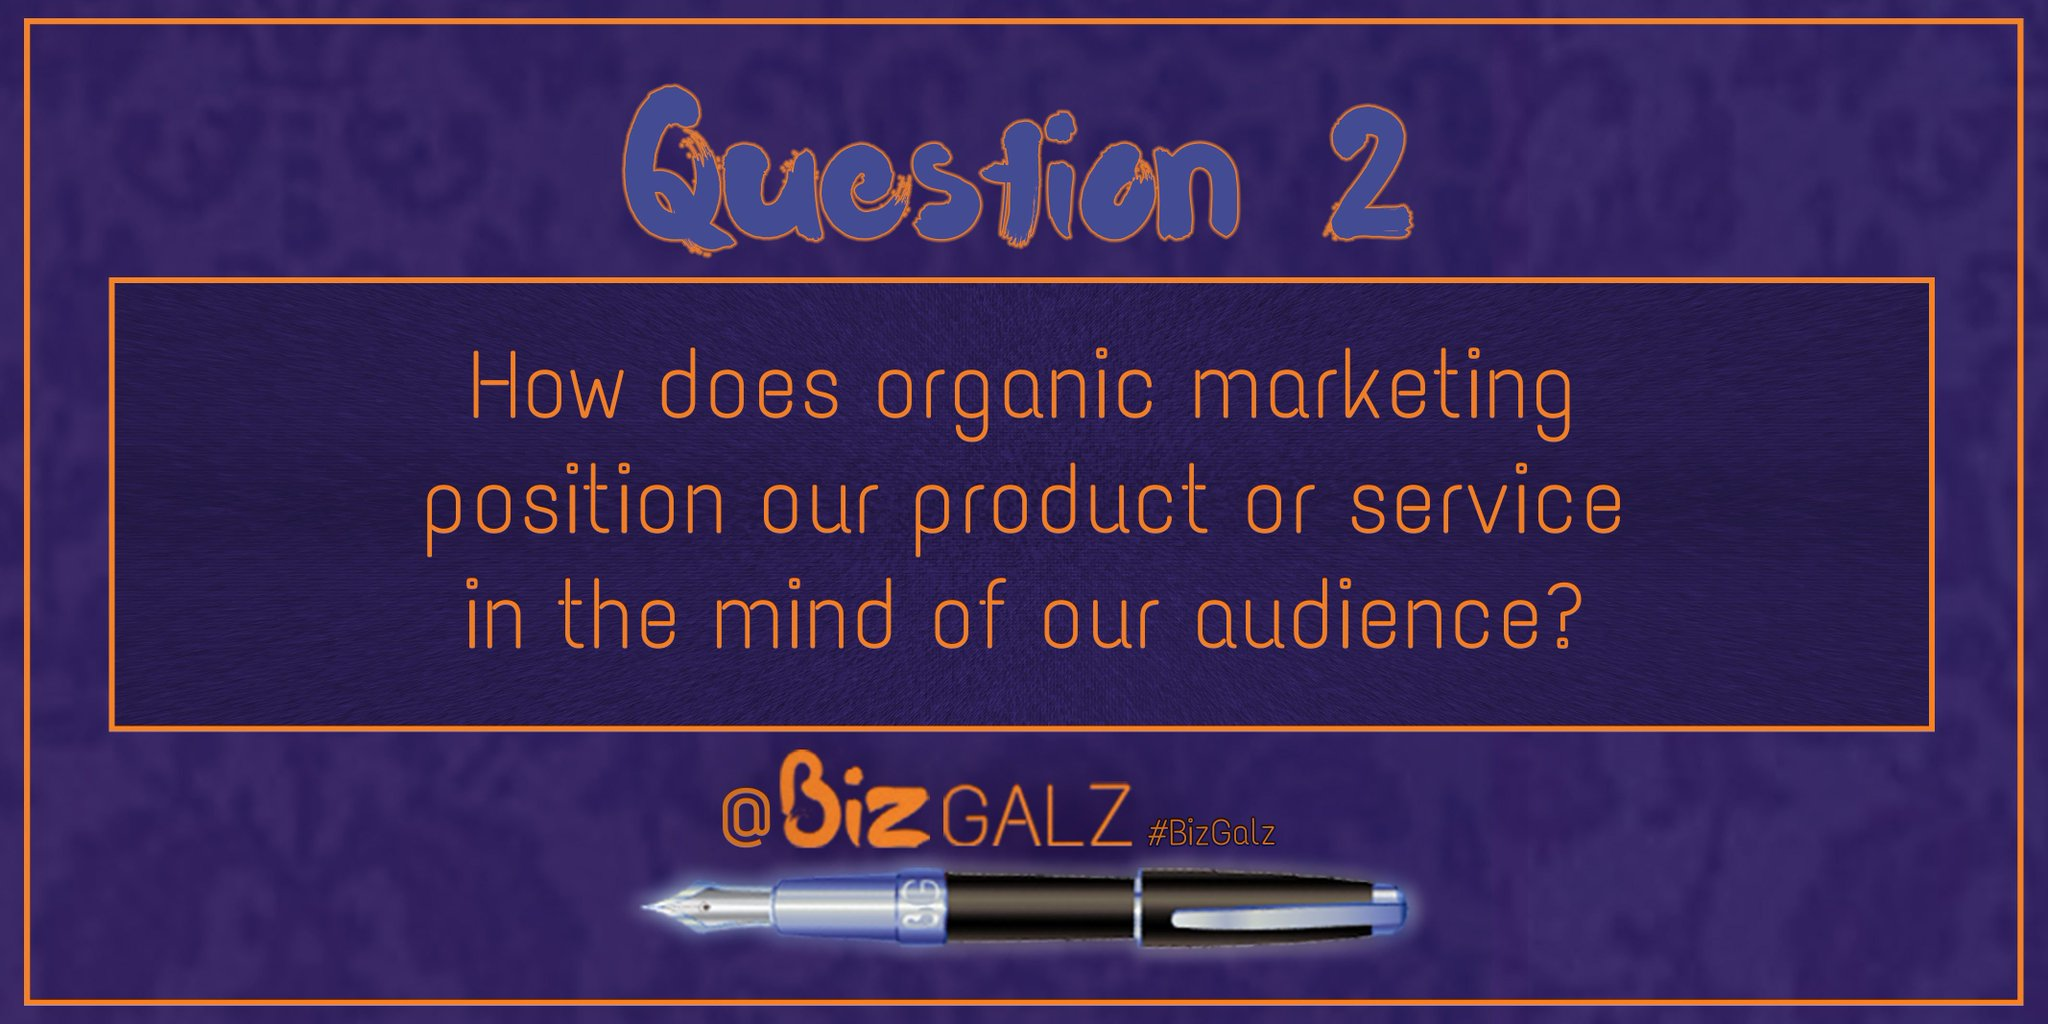 Q2 How does #OrganicMarketing position our product or service in the mind of our audience? #BizGalz https://t.co/7QSBuUxHE7